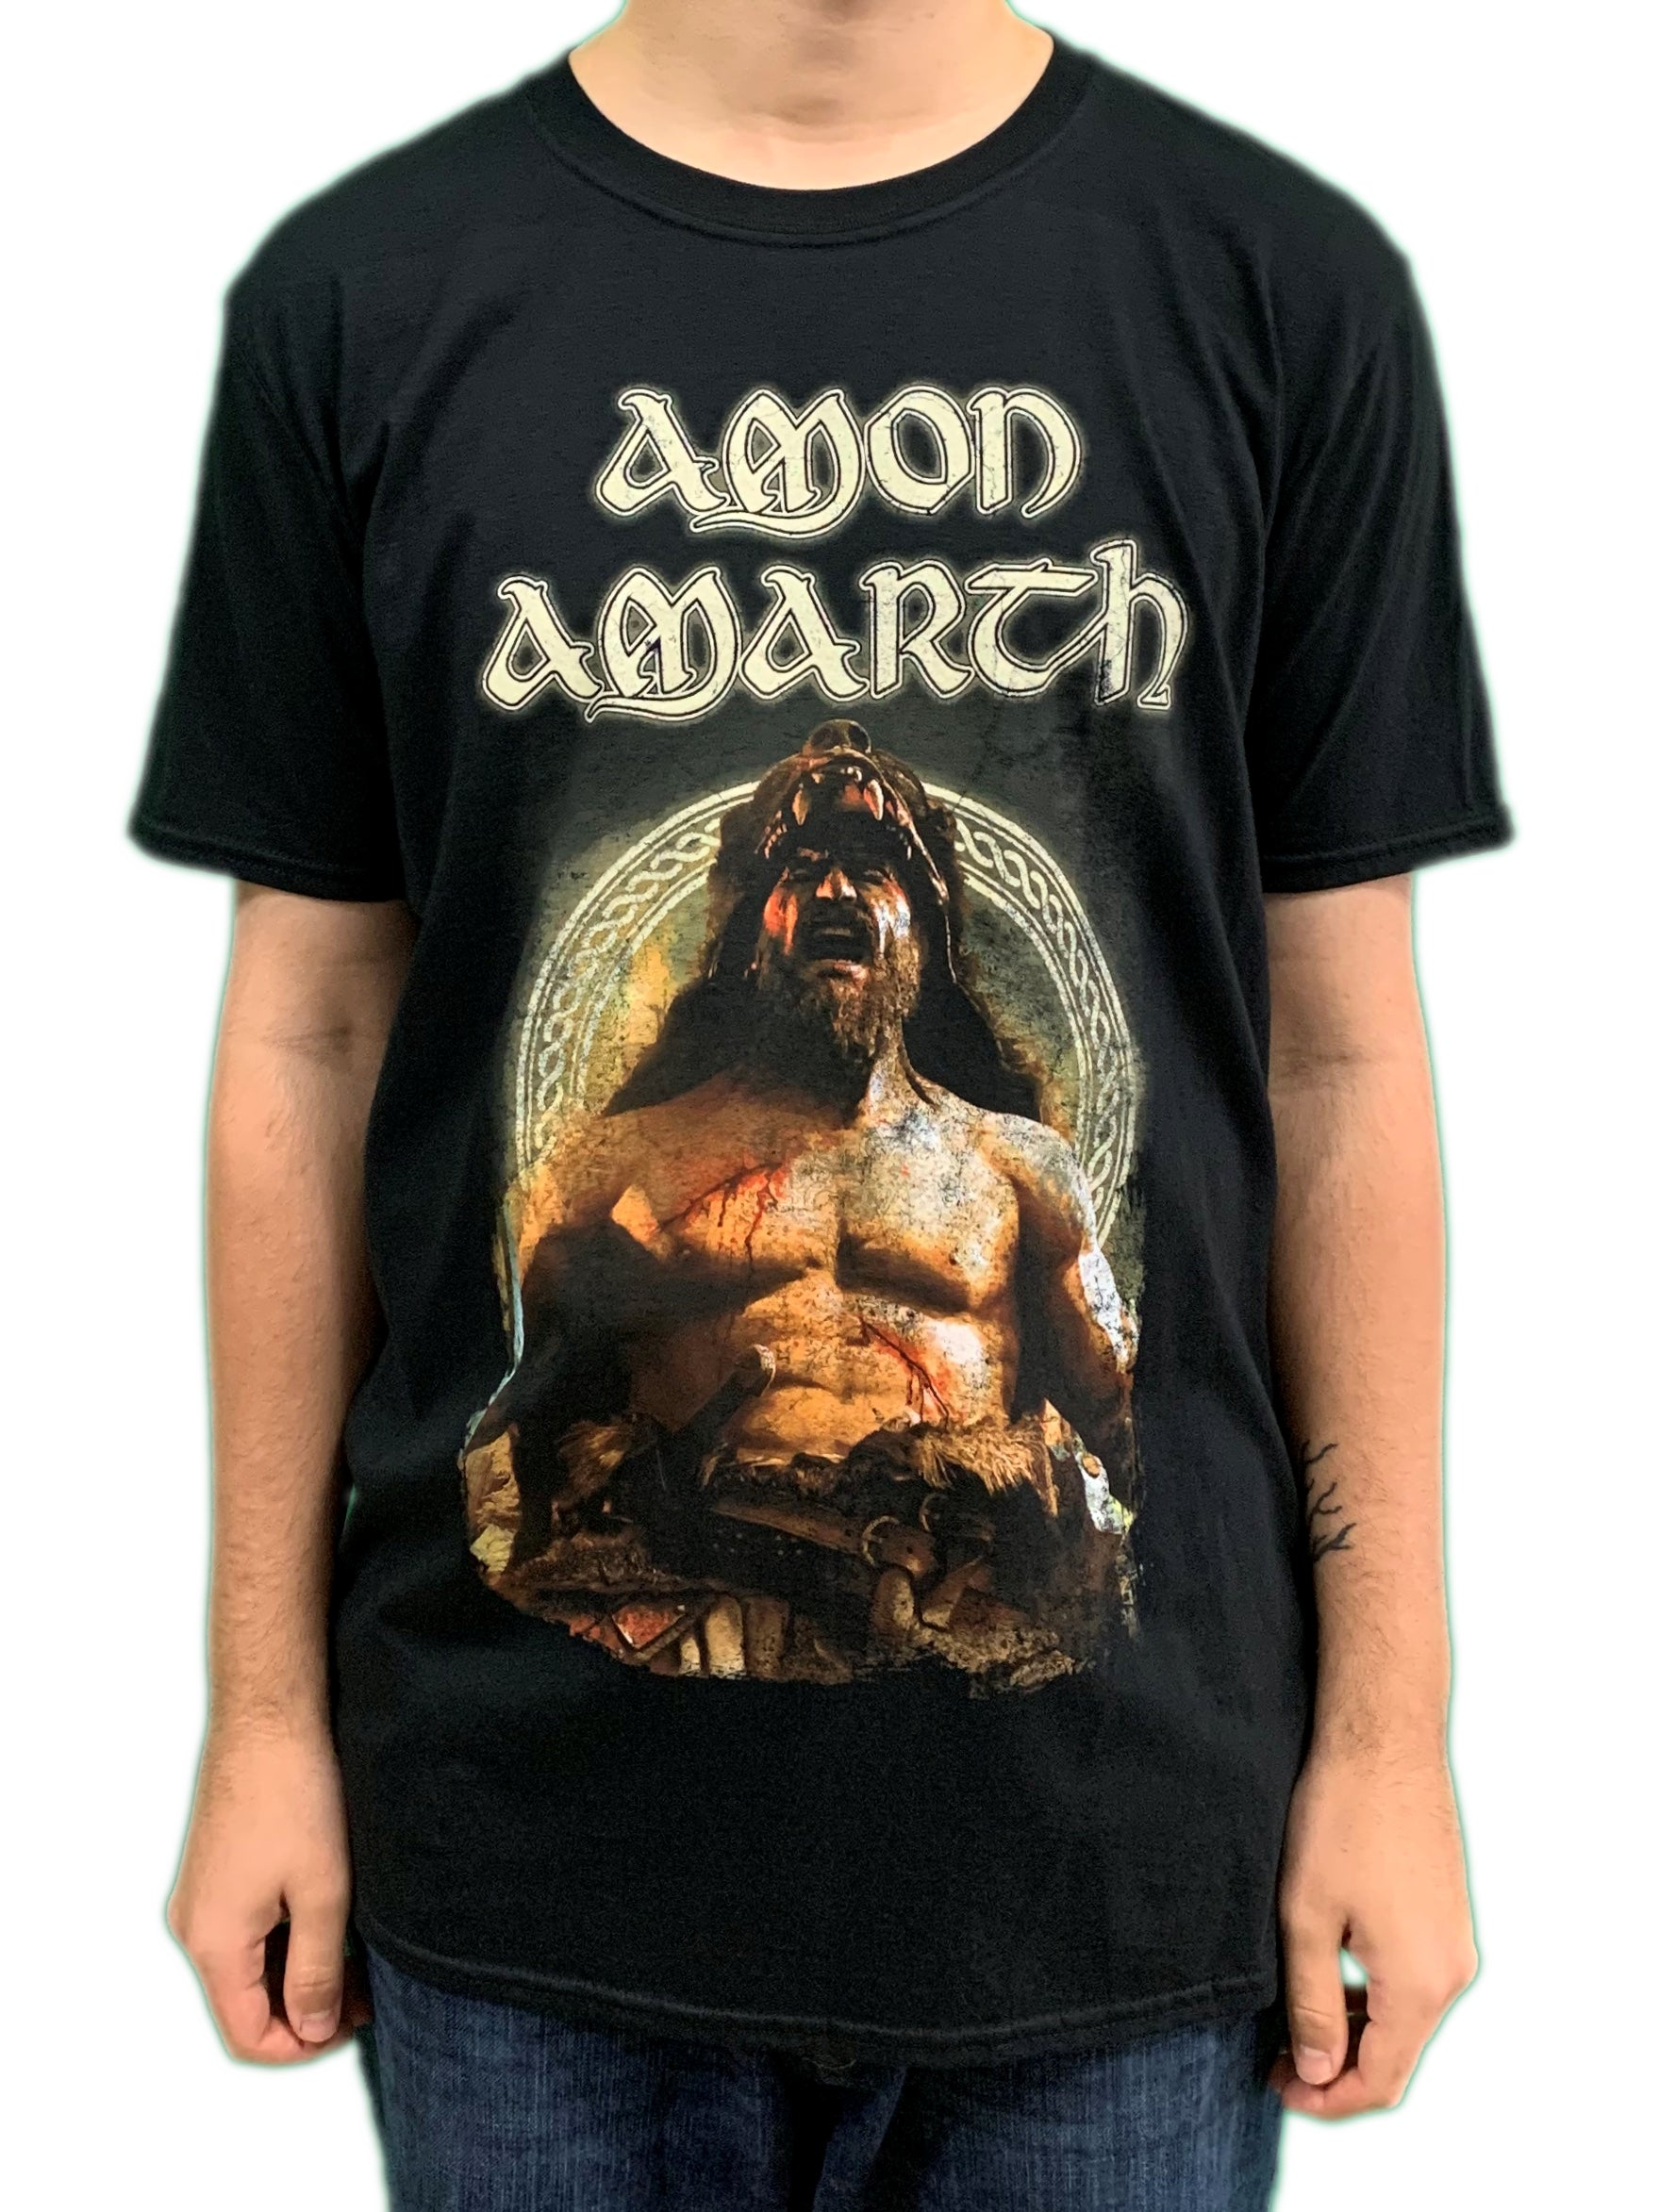 Amon Amarth Berzerker Unisex Official T Shirt Brand New Various Sizes